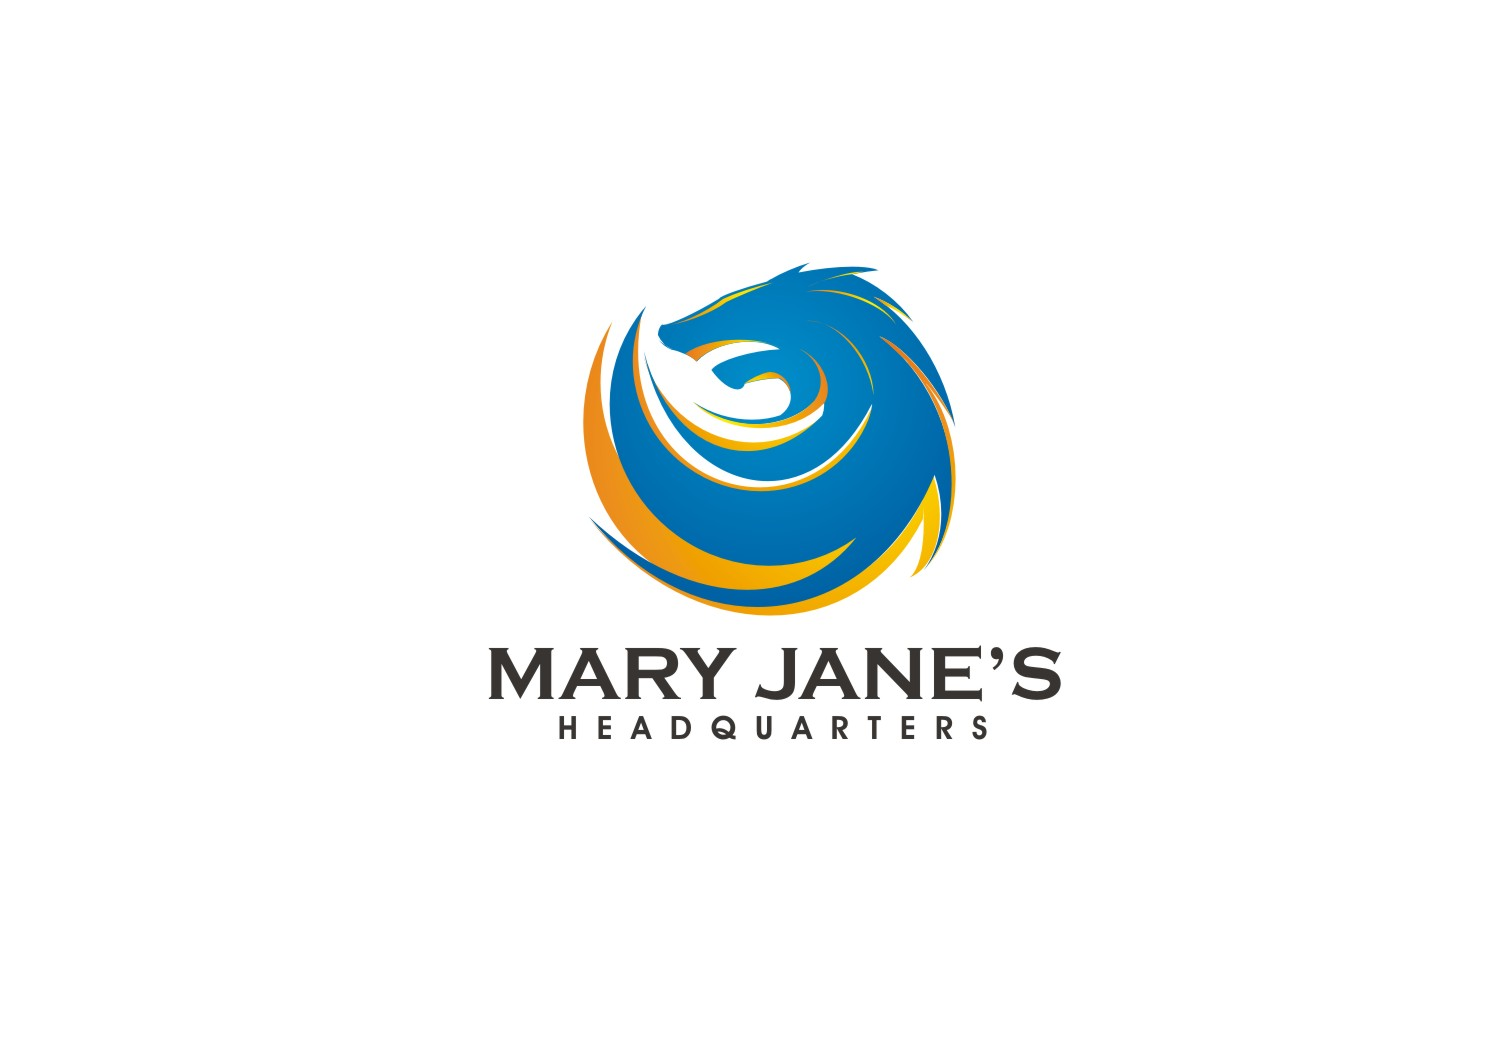 Logo Design by yanxsant - Entry No. 16 in the Logo Design Contest Mary Jane's Headquarters Logo Design.